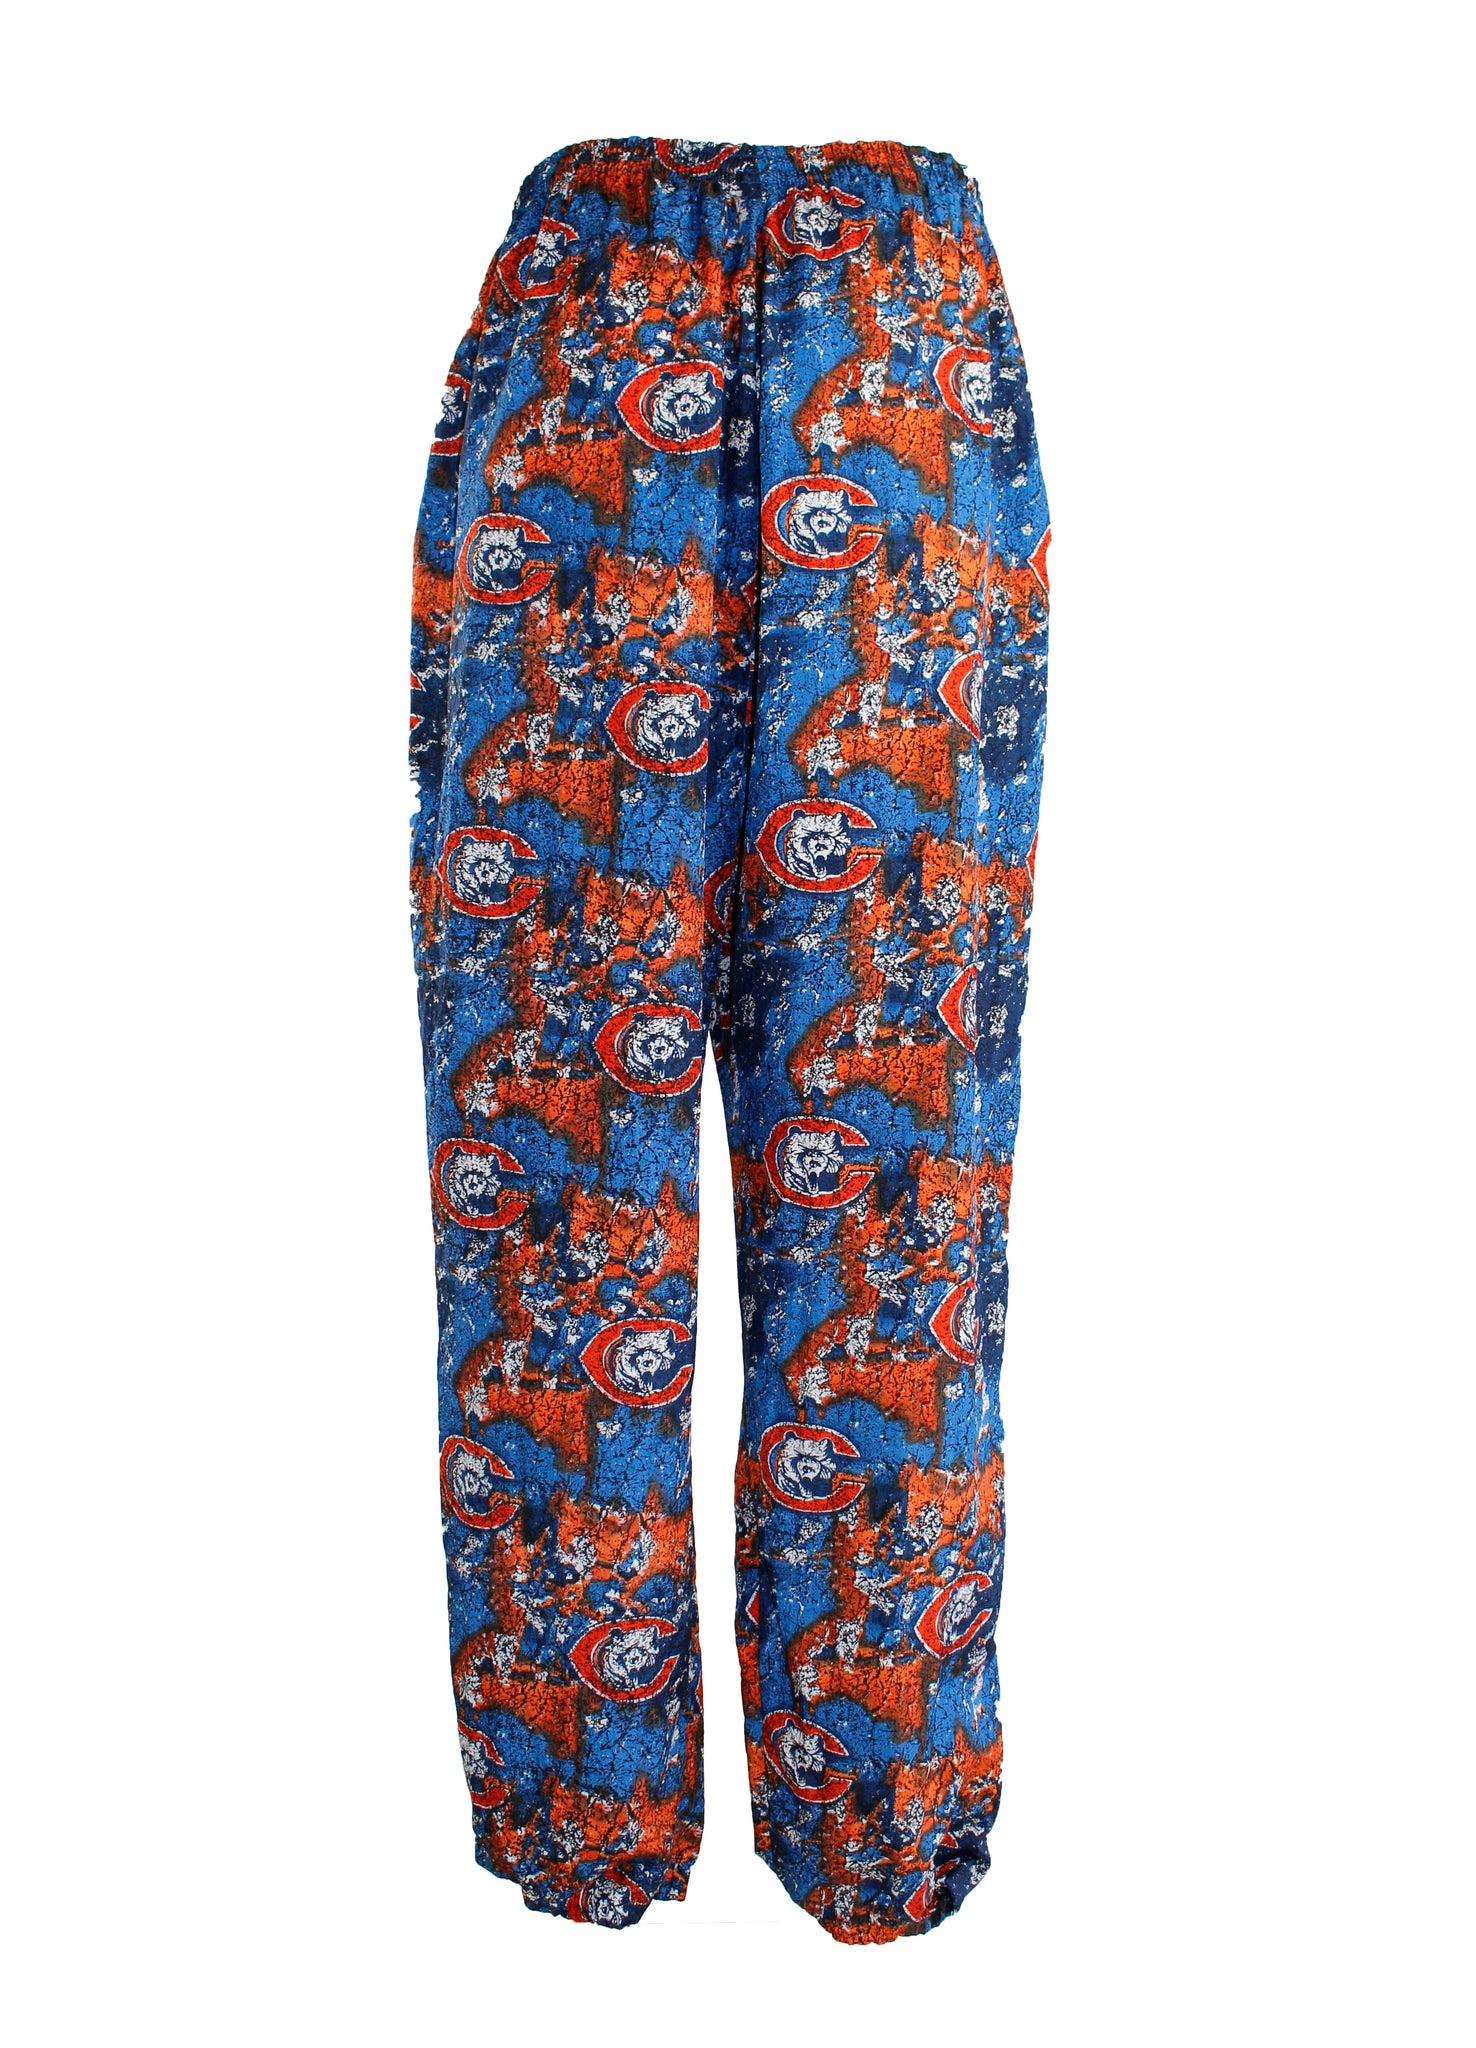 Vintage Bears Windbreaker Pants